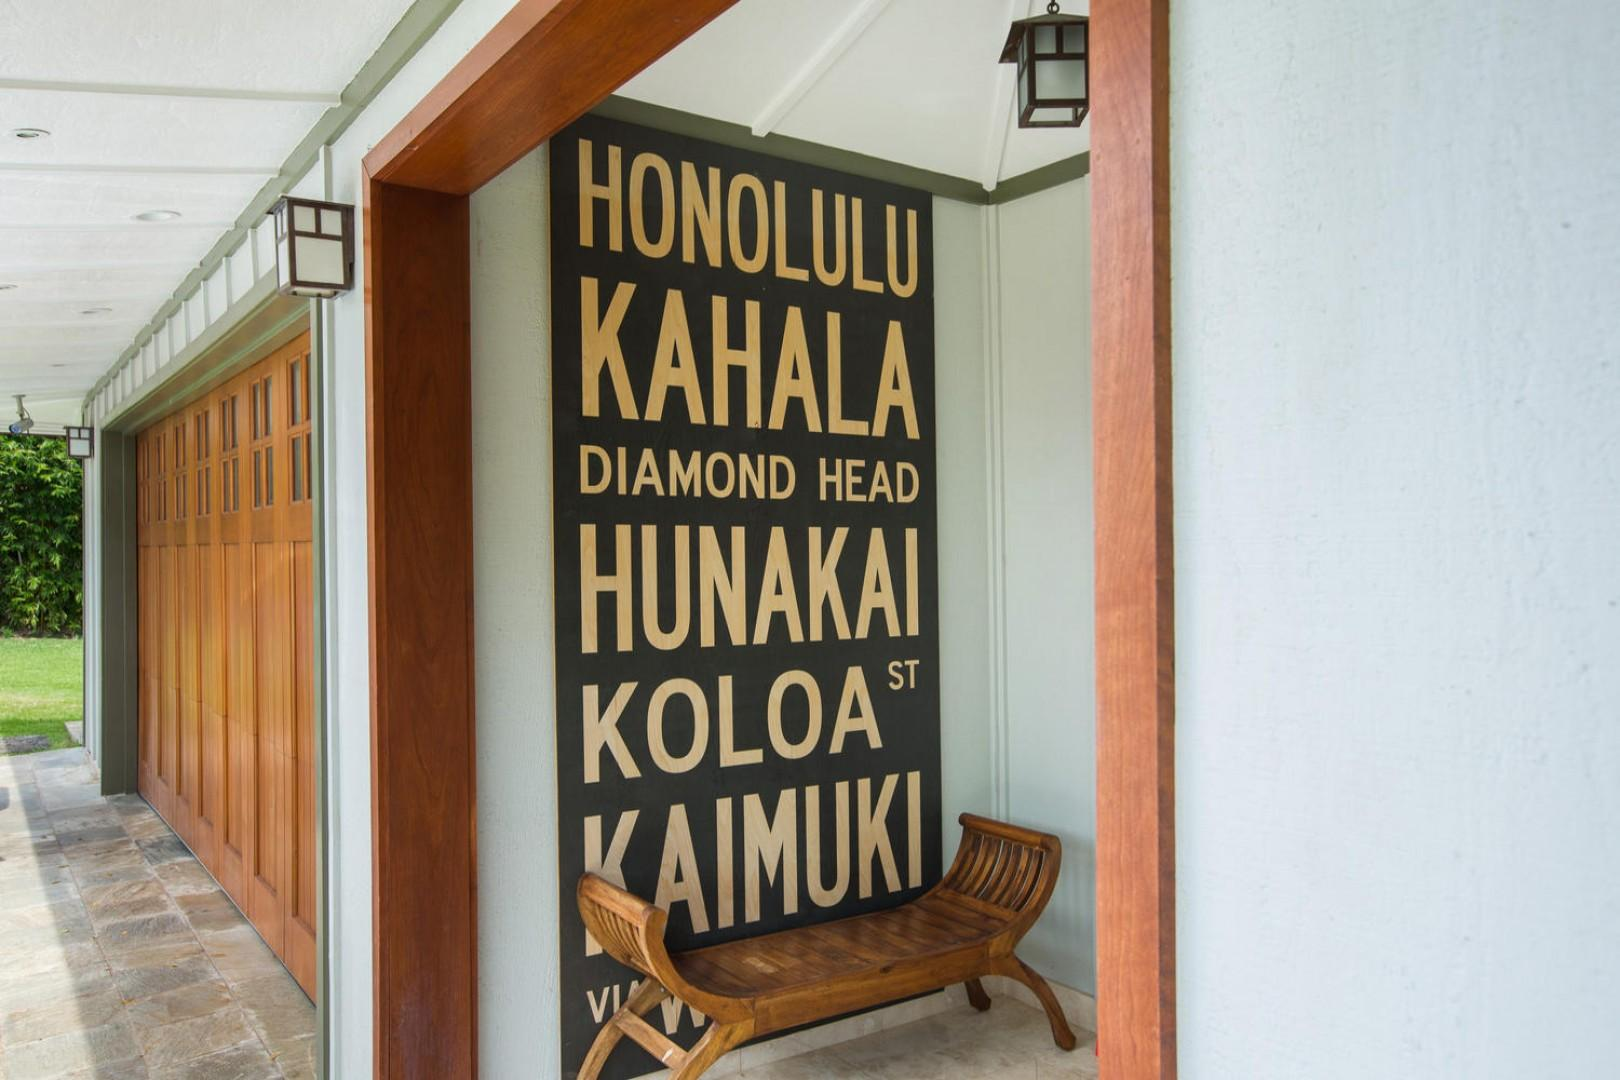 As you enter the villa, you are greeted by beautiful cherry wood finishes and Hawaiian details.